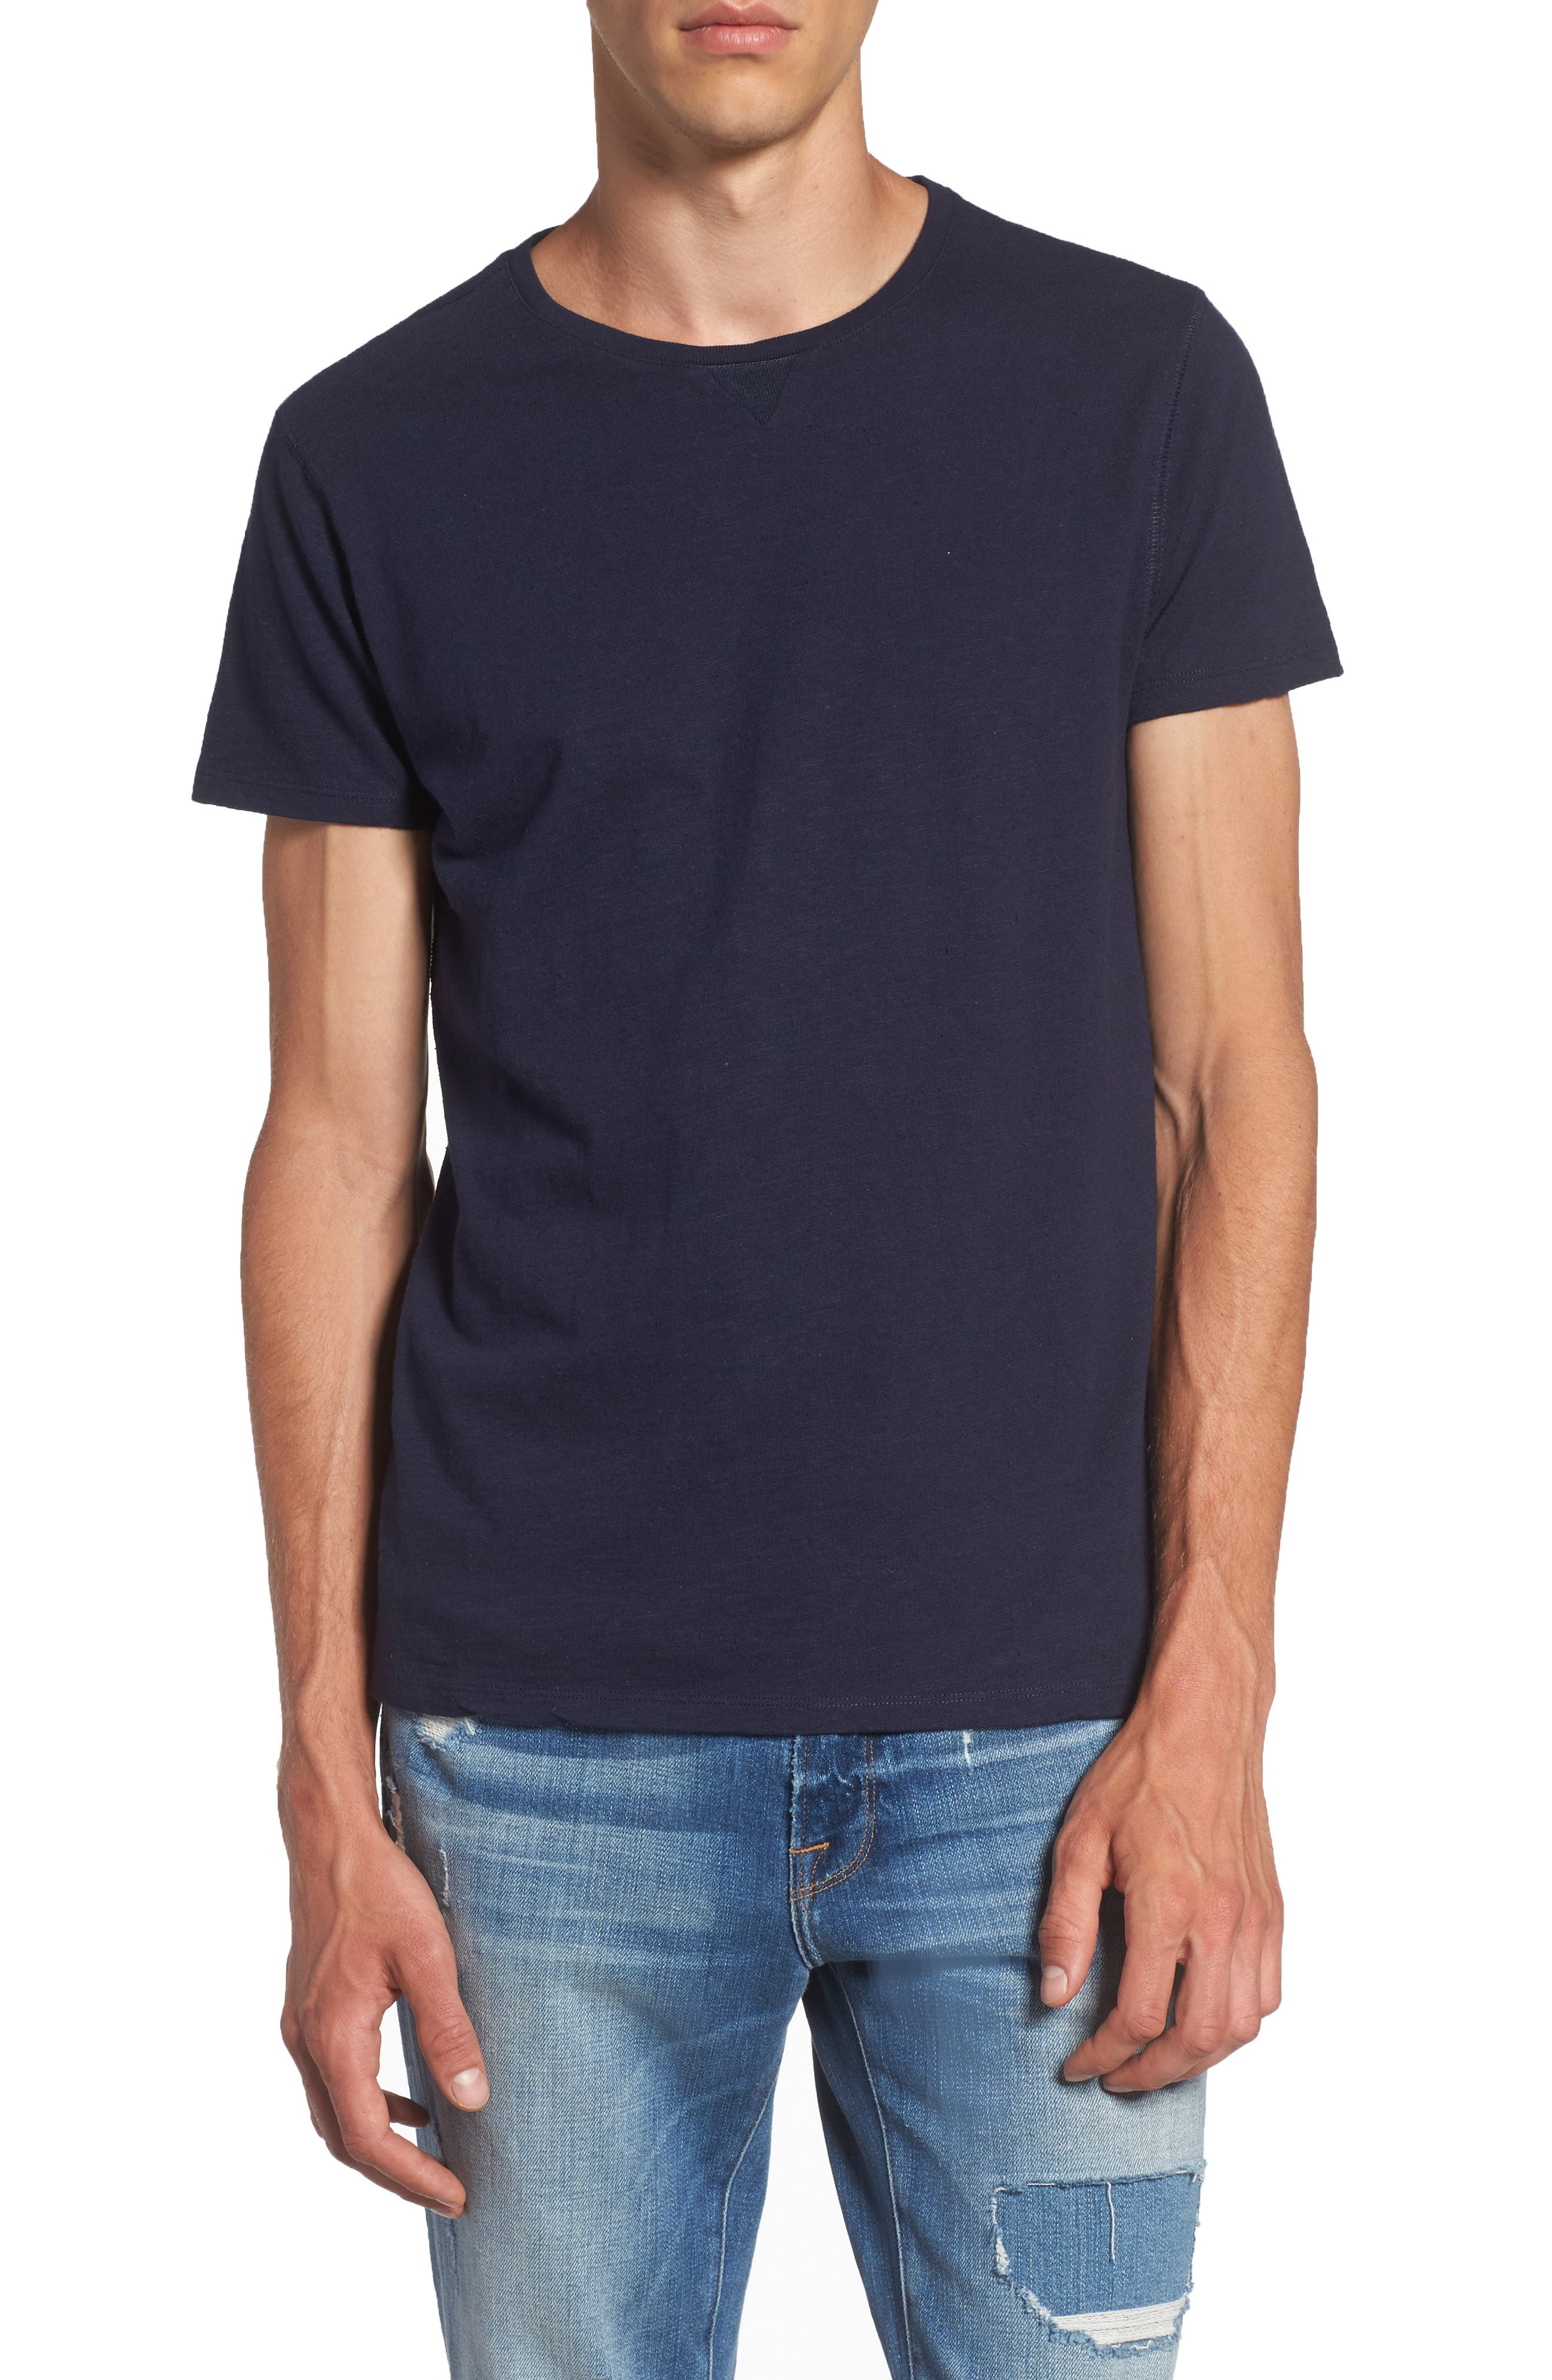 Home Alone Classic T-Shirt,                         Main,                         color, Navy